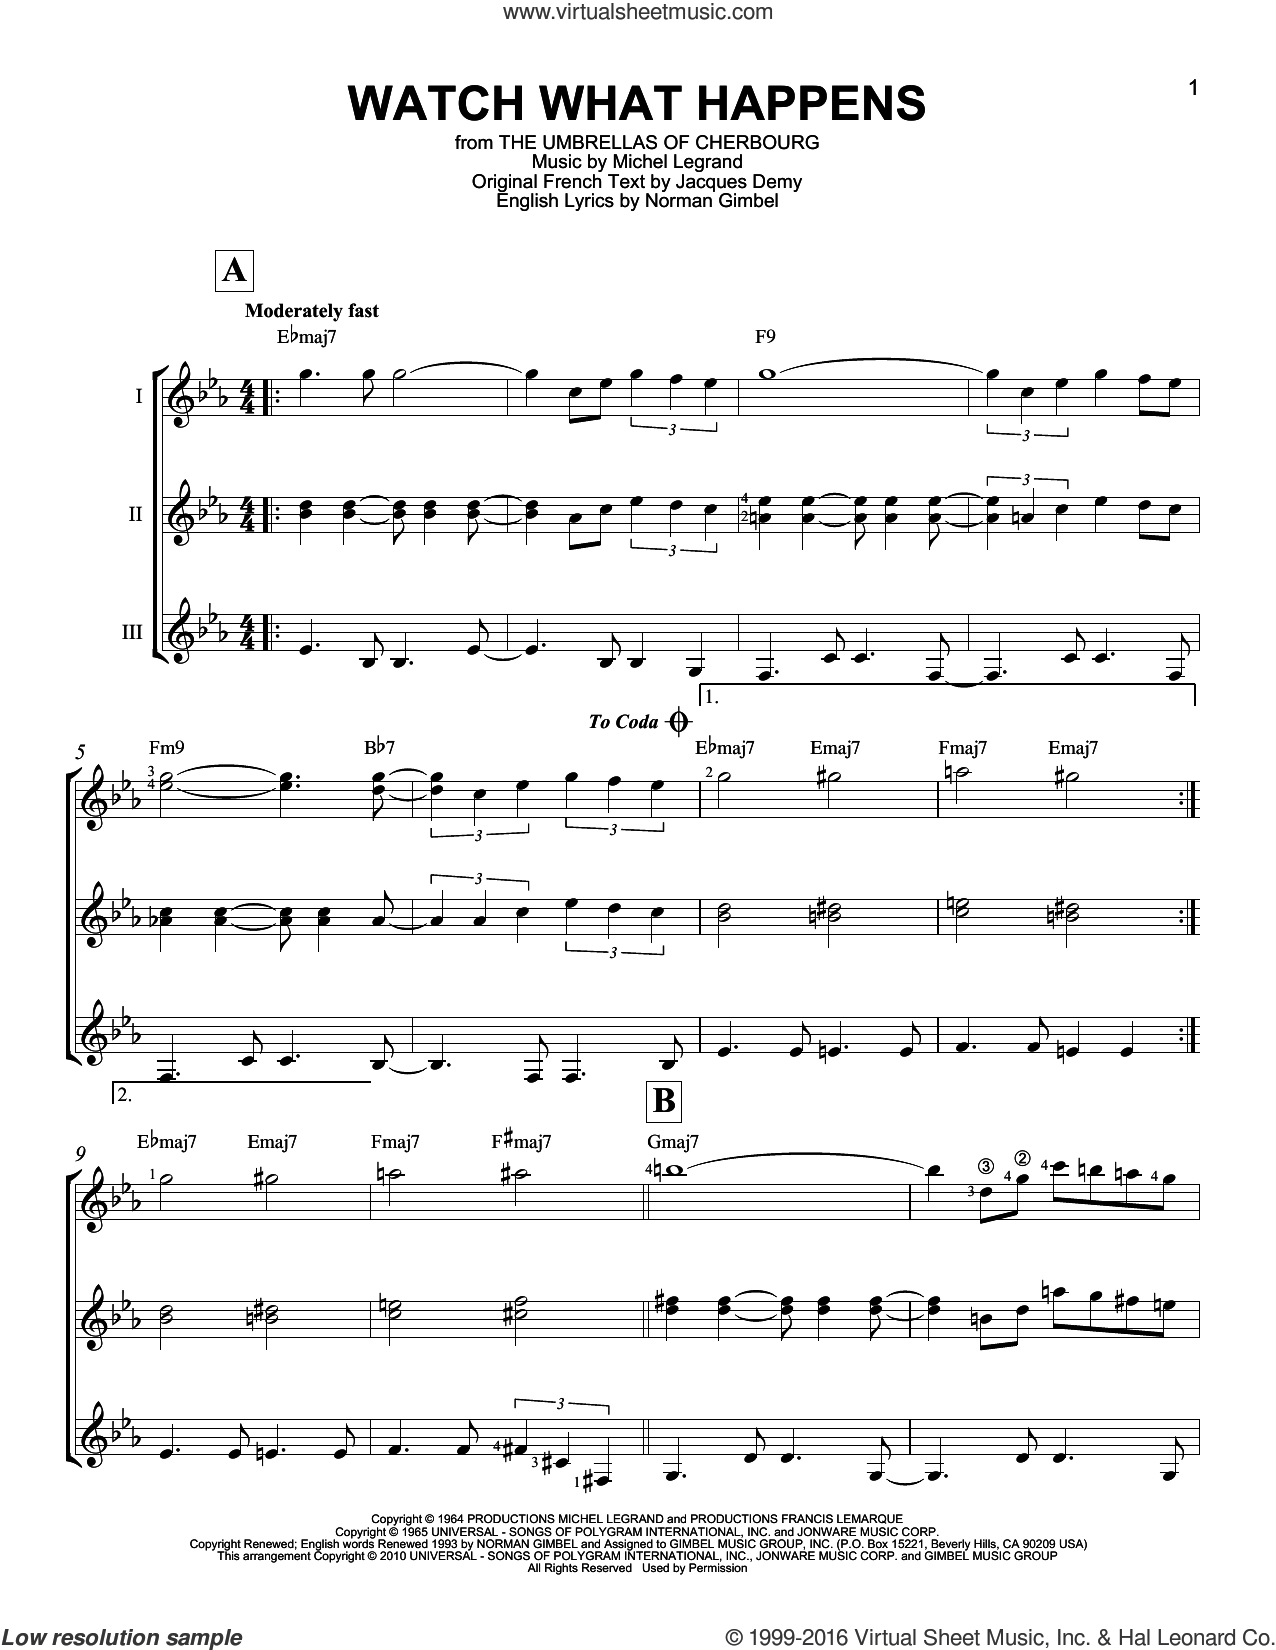 Watch What Happens sheet music for guitar ensemble by Norman Gimbel